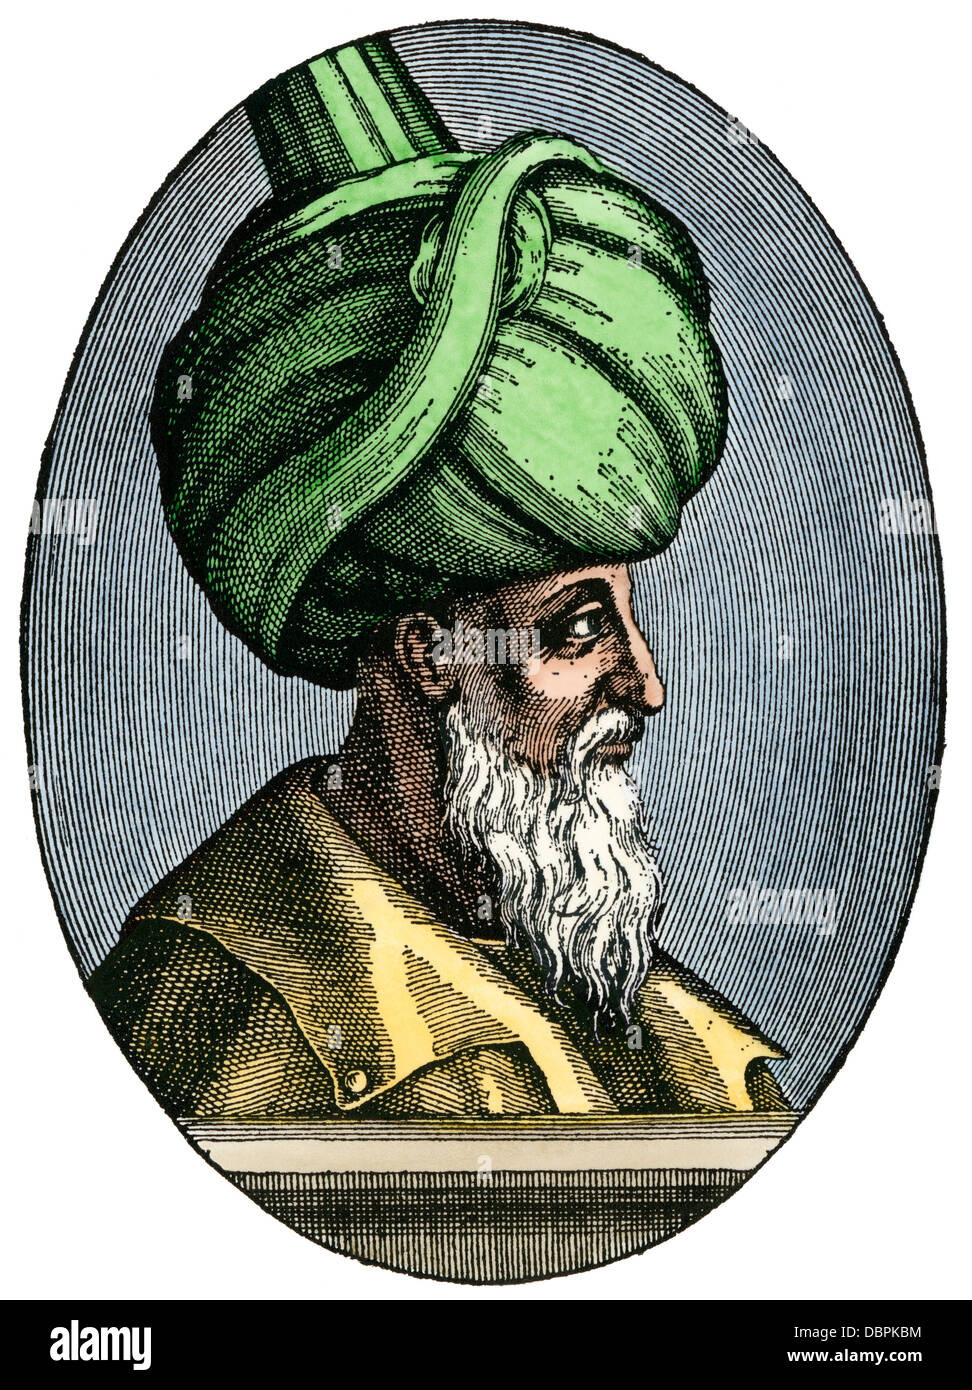 Suleiman I, 'The Magnificent,' sultan of the Ottoman Empire. Hand-colored woodcut - Stock Image